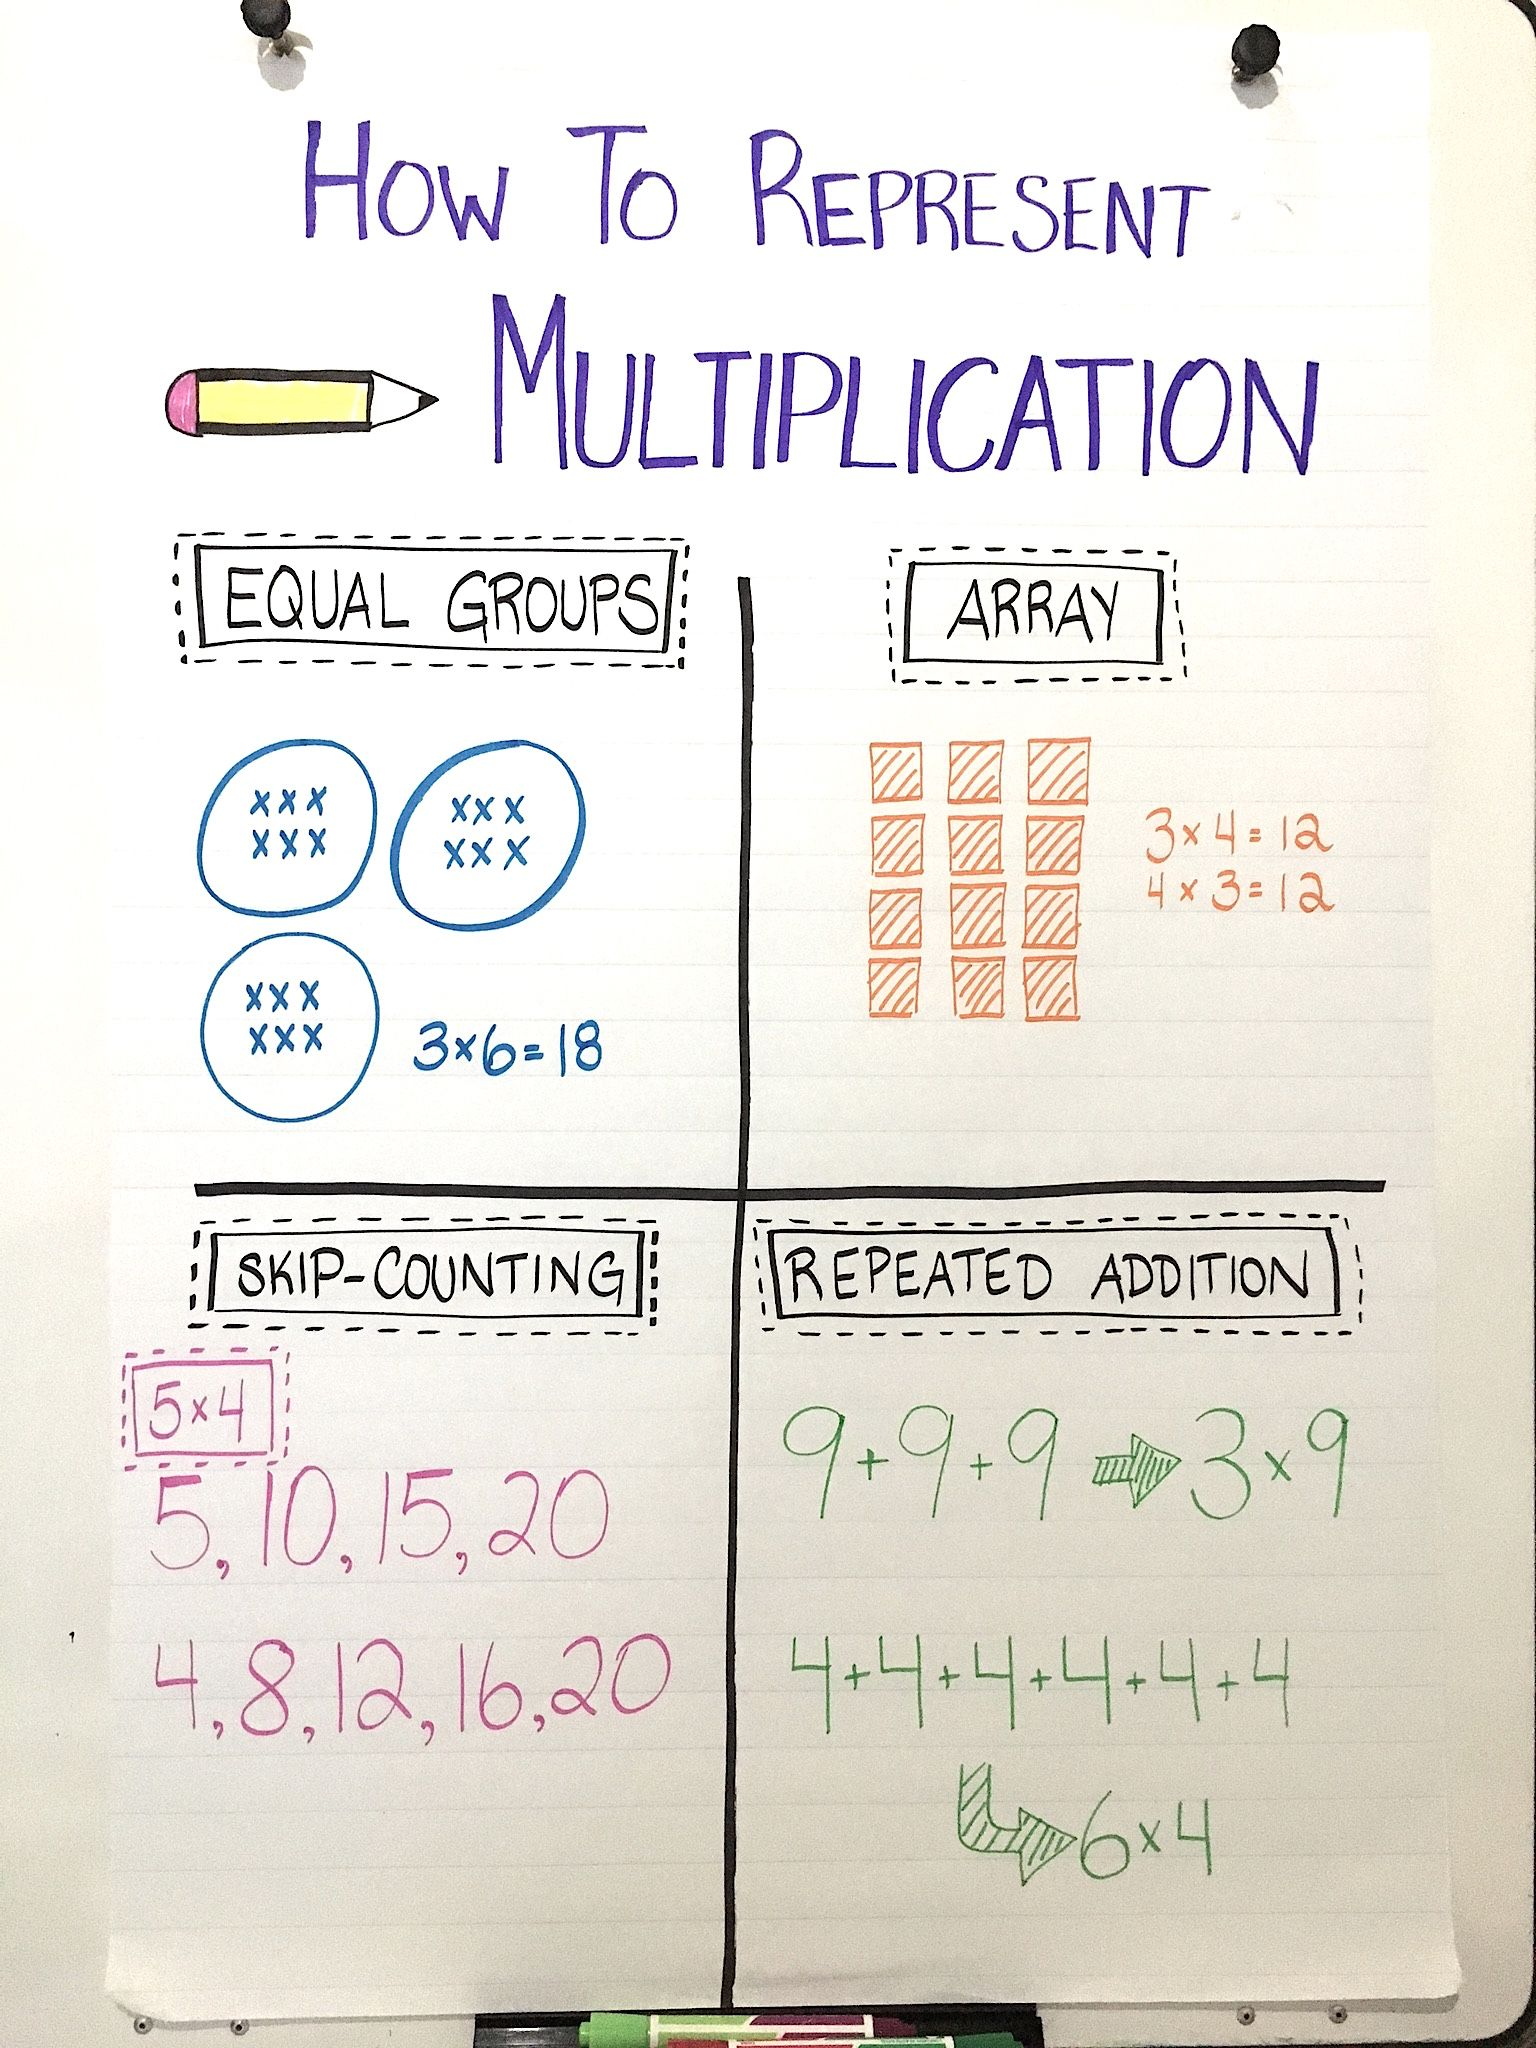 Four Ways To Represent Multiplication Teaching Multiplication Teaching Math Elementary Learning Math How to do multiply addition